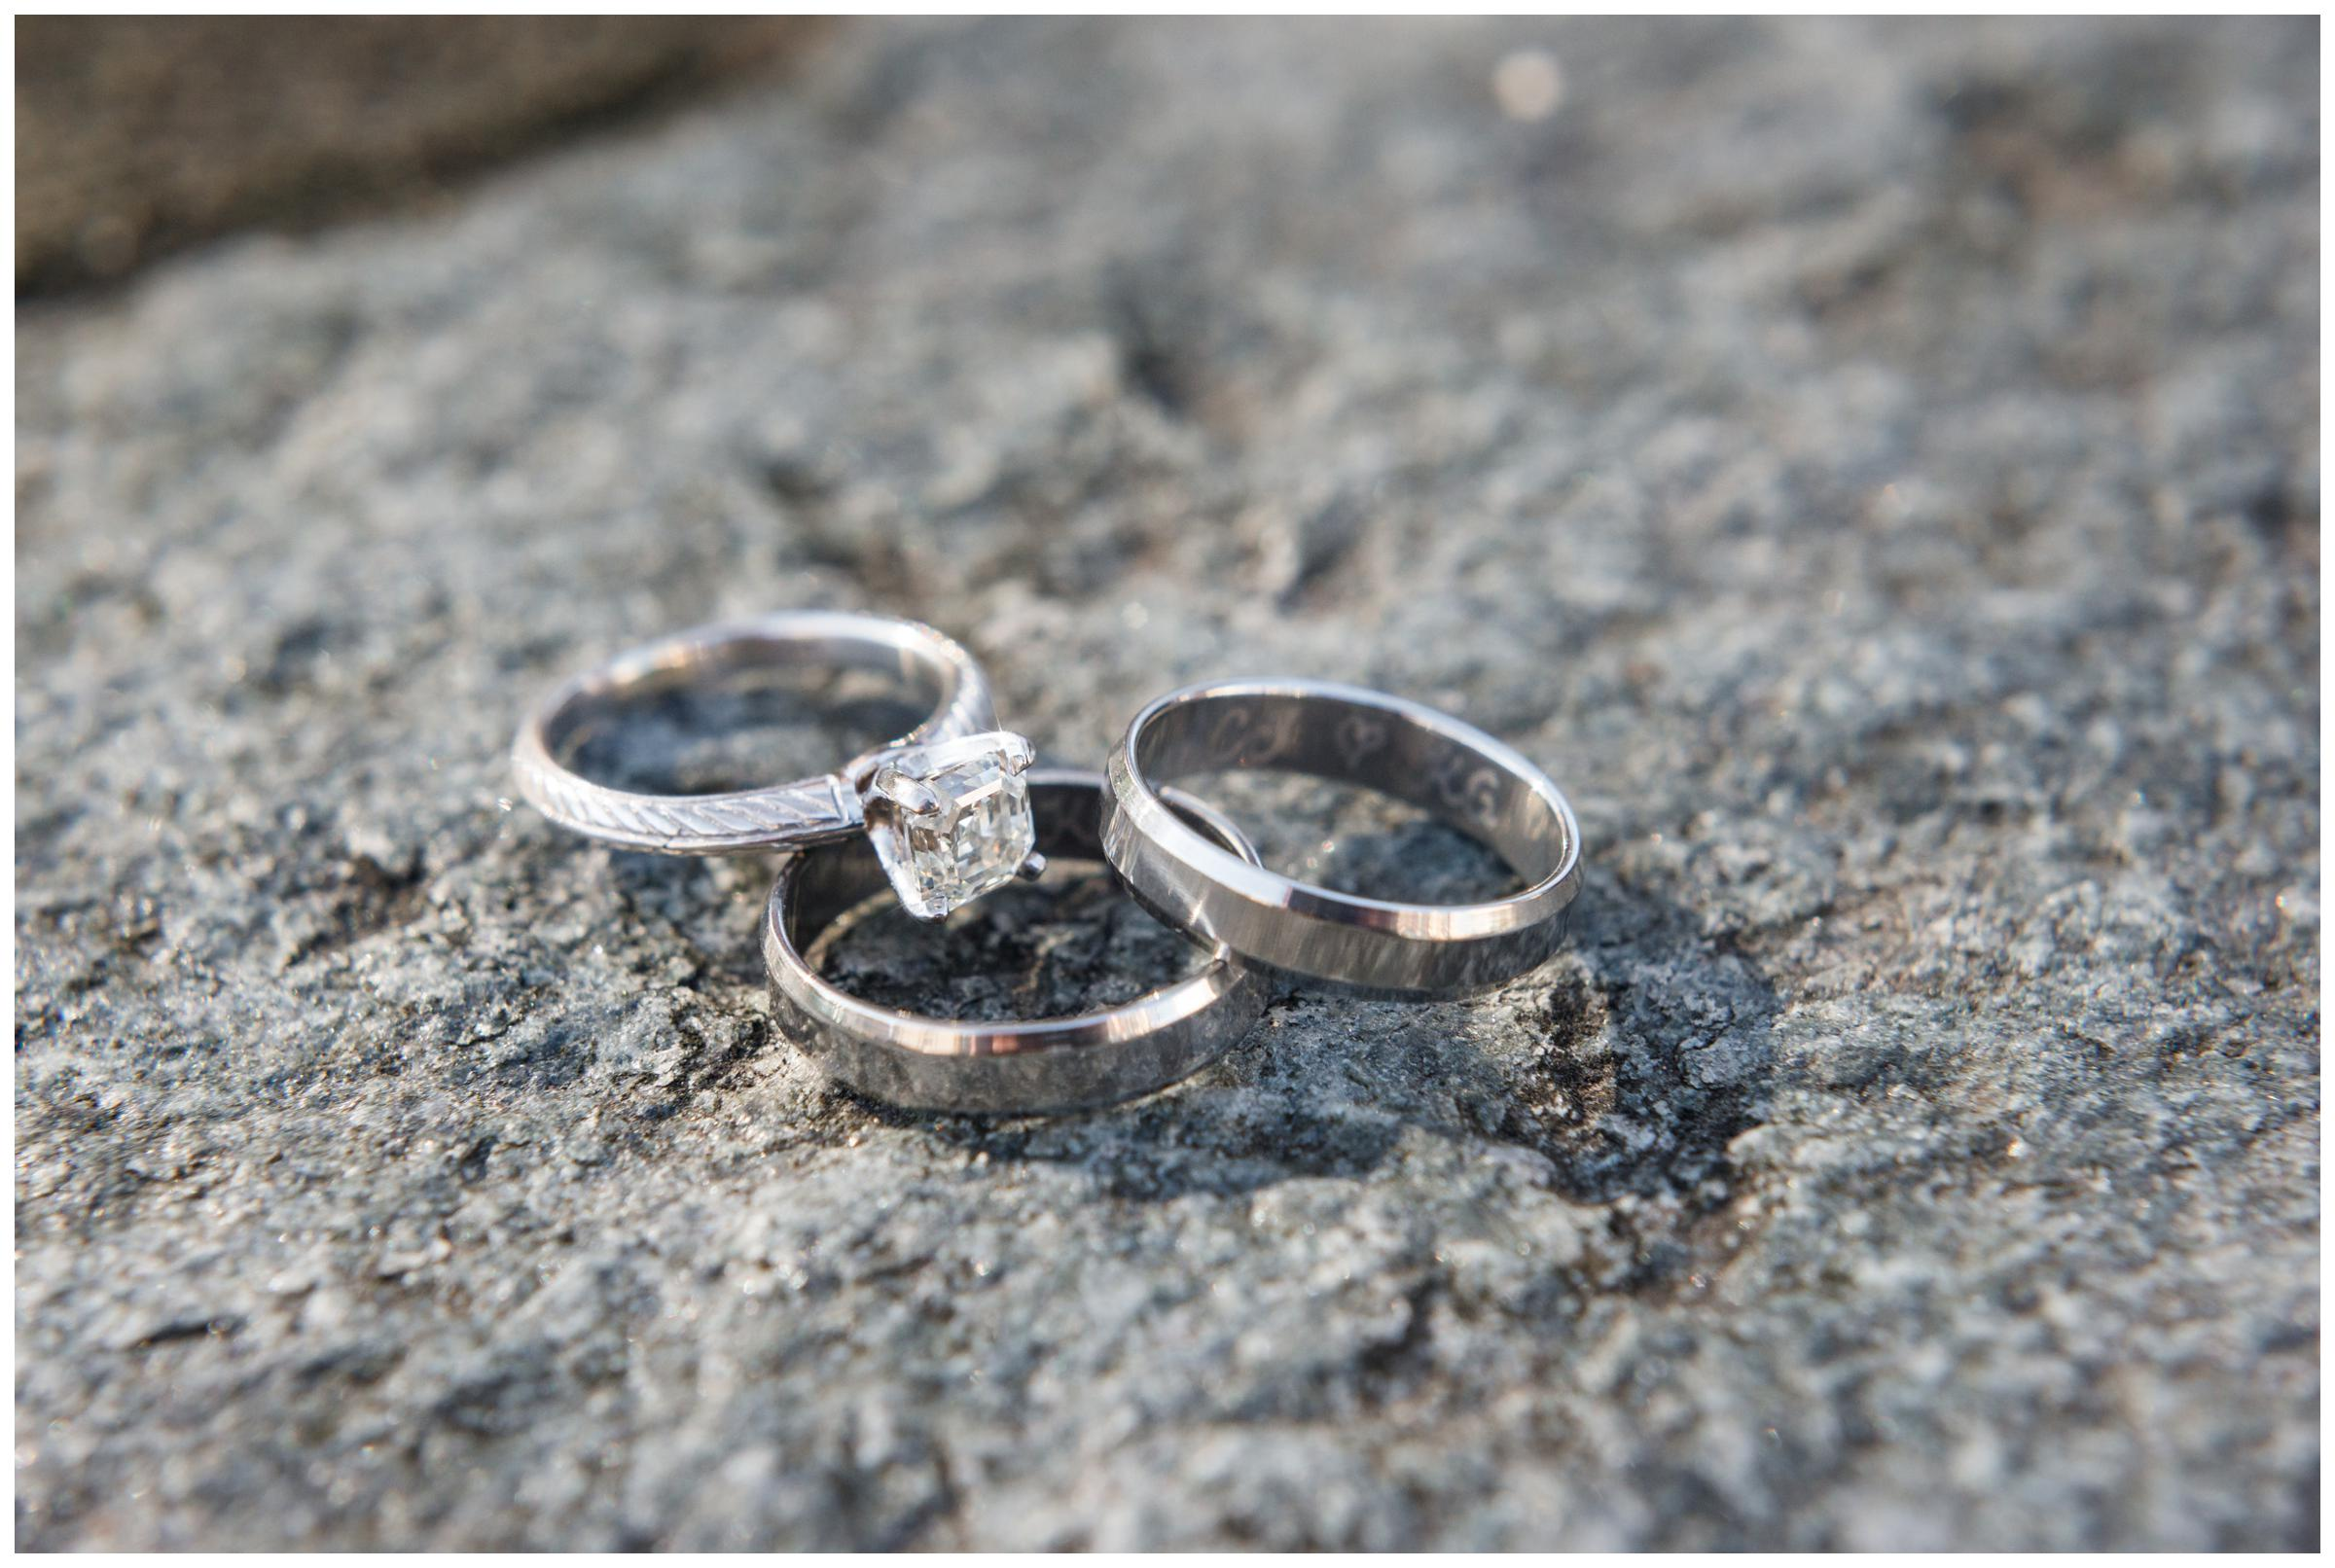 Engagement ring and engraved wedding rings on granite